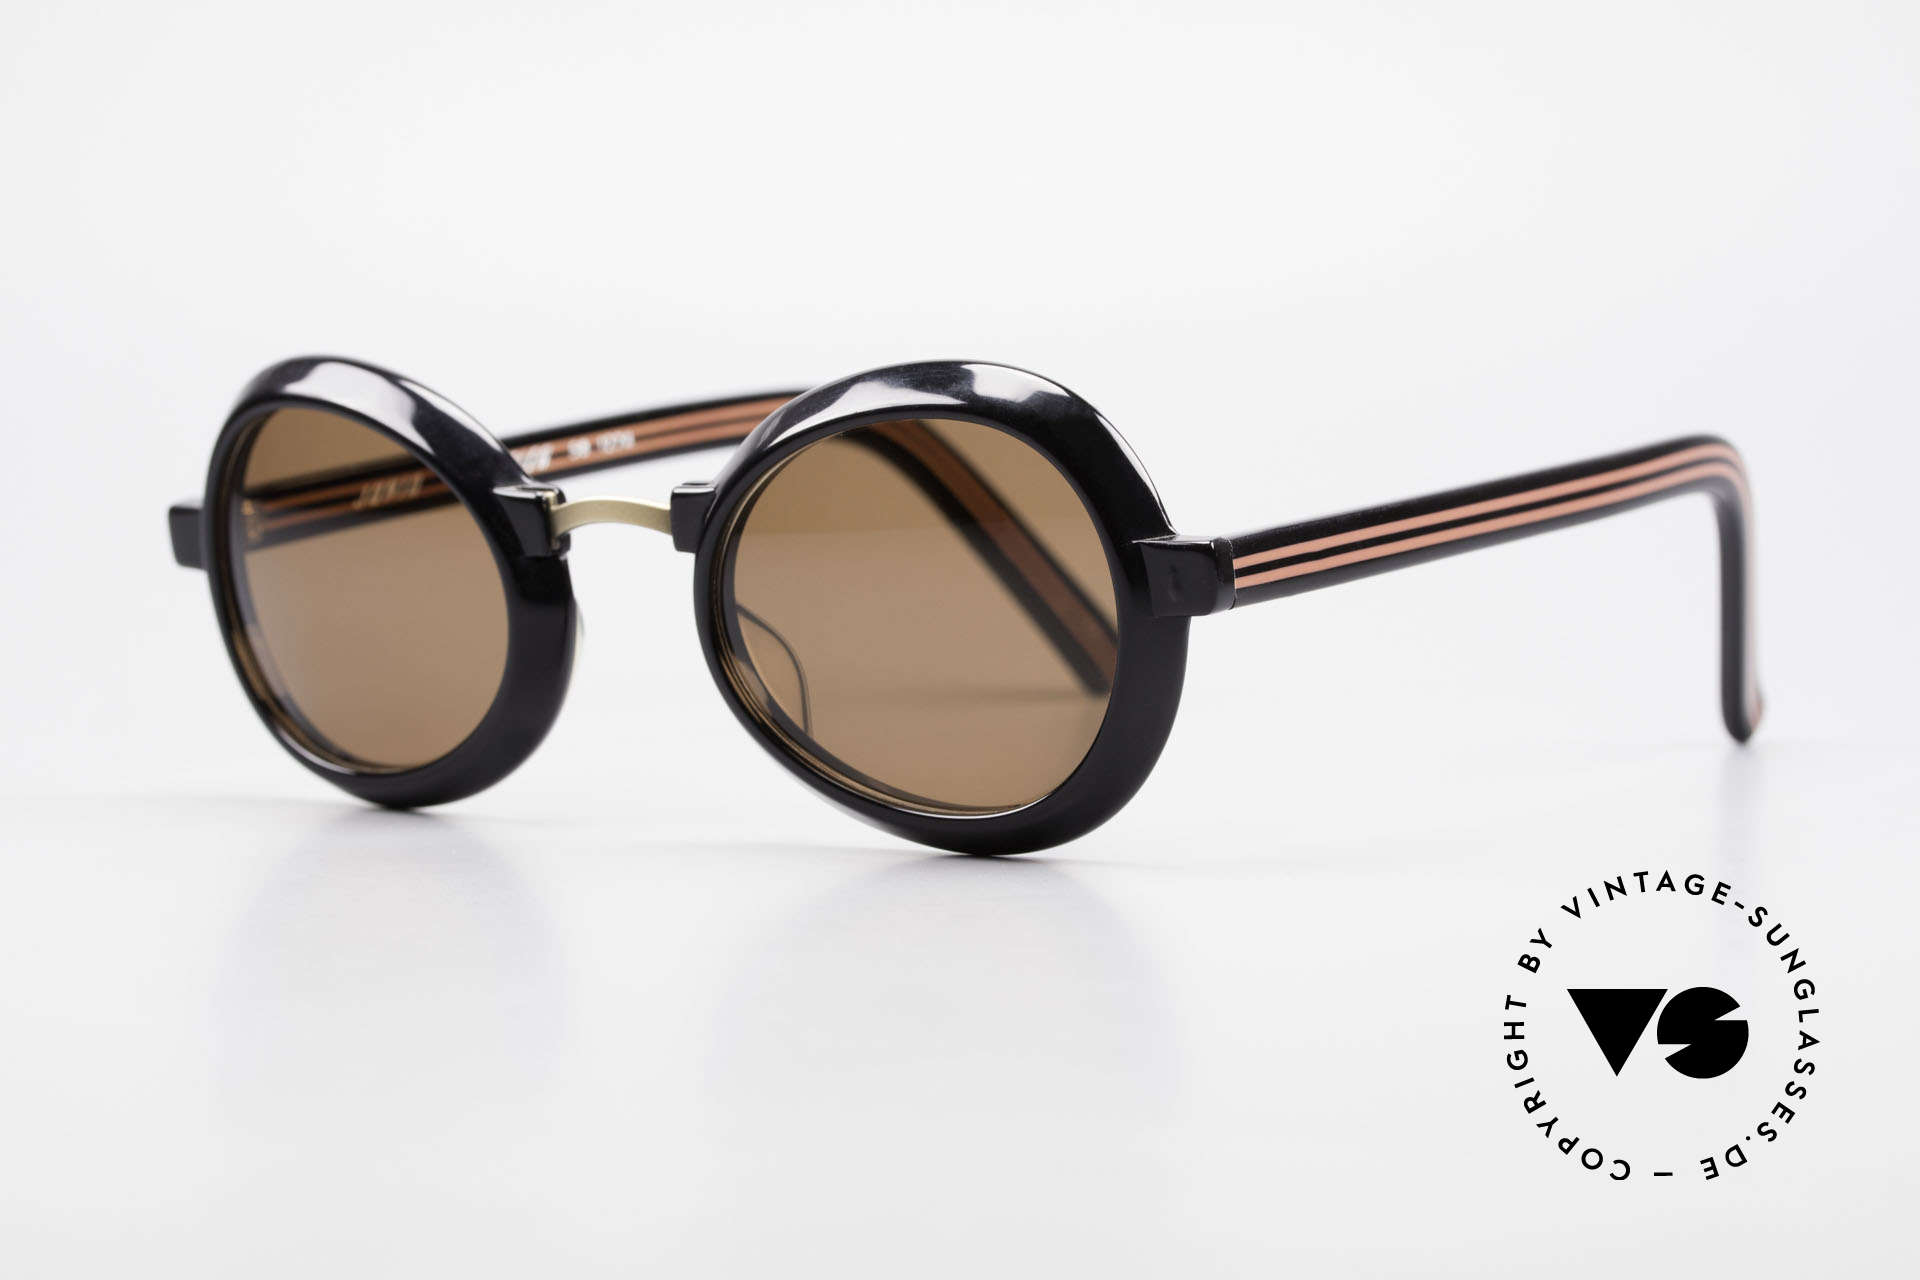 Jean Paul Gaultier 58-1274 Junior Gaultier Vintage Shades, great model of the fancy JUNIOR GAULTIER series, Made for Men and Women